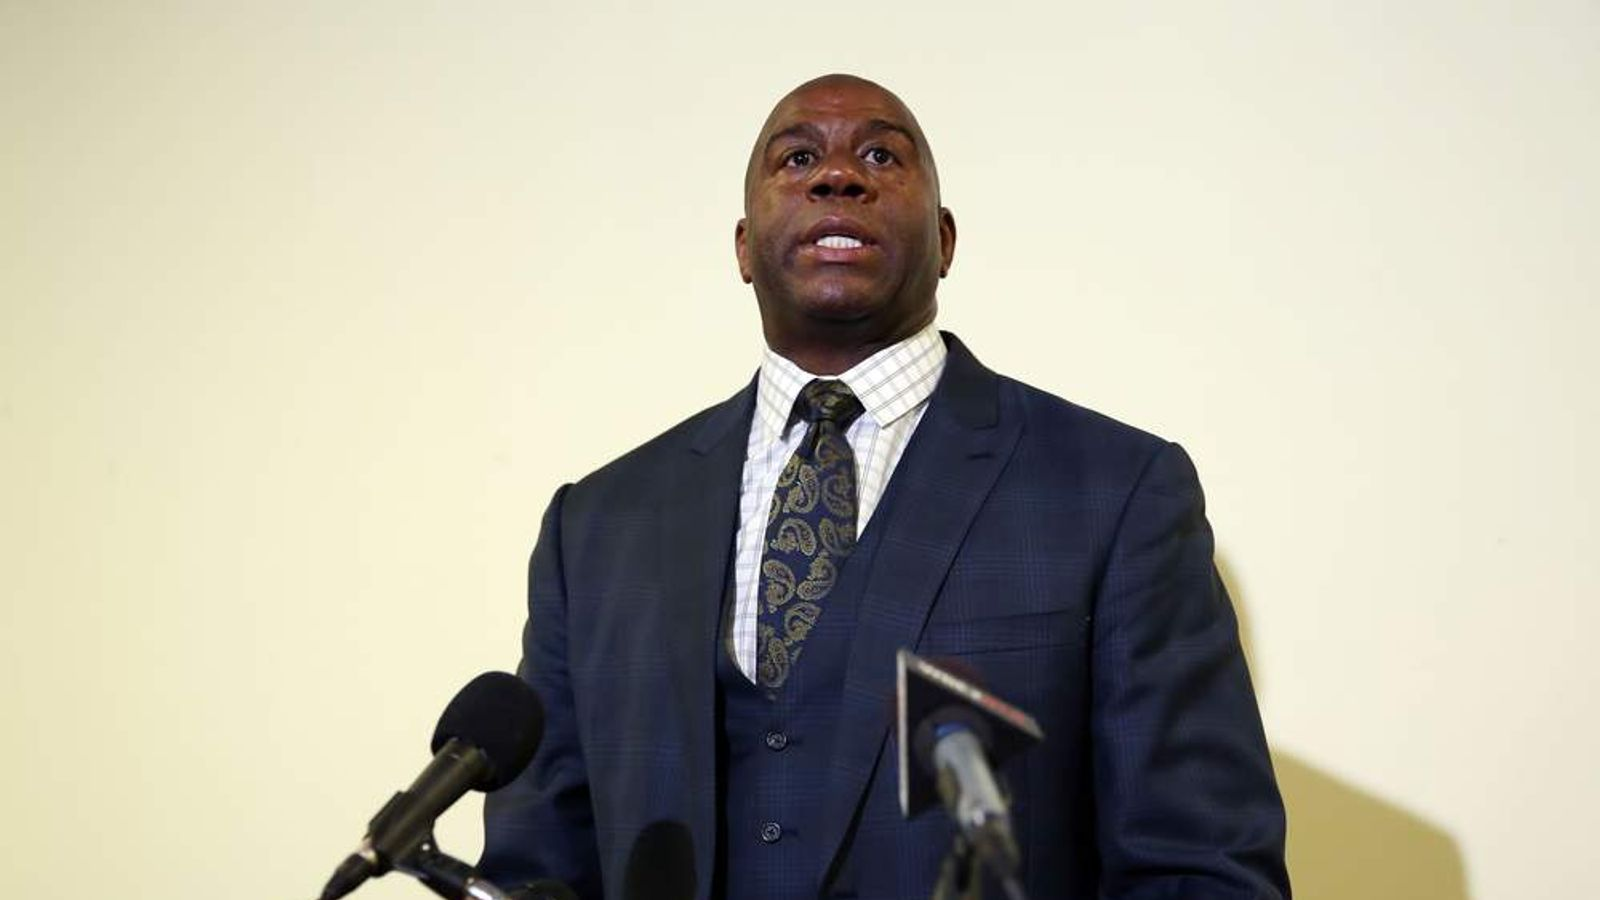 Magic Johnson speaks about Donald Sterling's comments